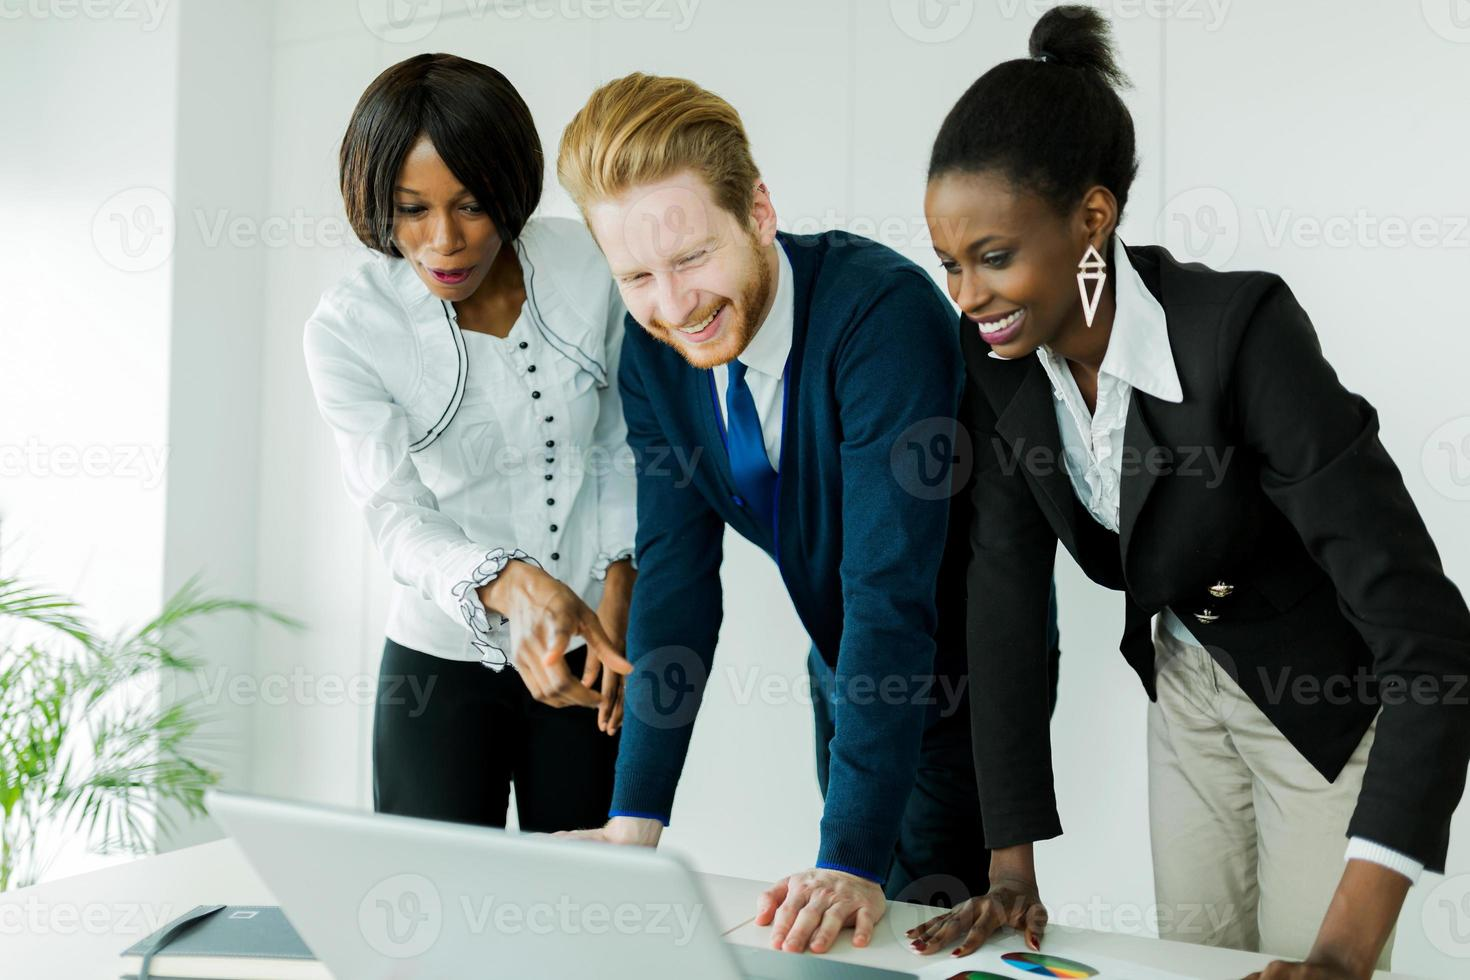 Business brainstorming by happy, nicely dressed multi-ethnic people photo